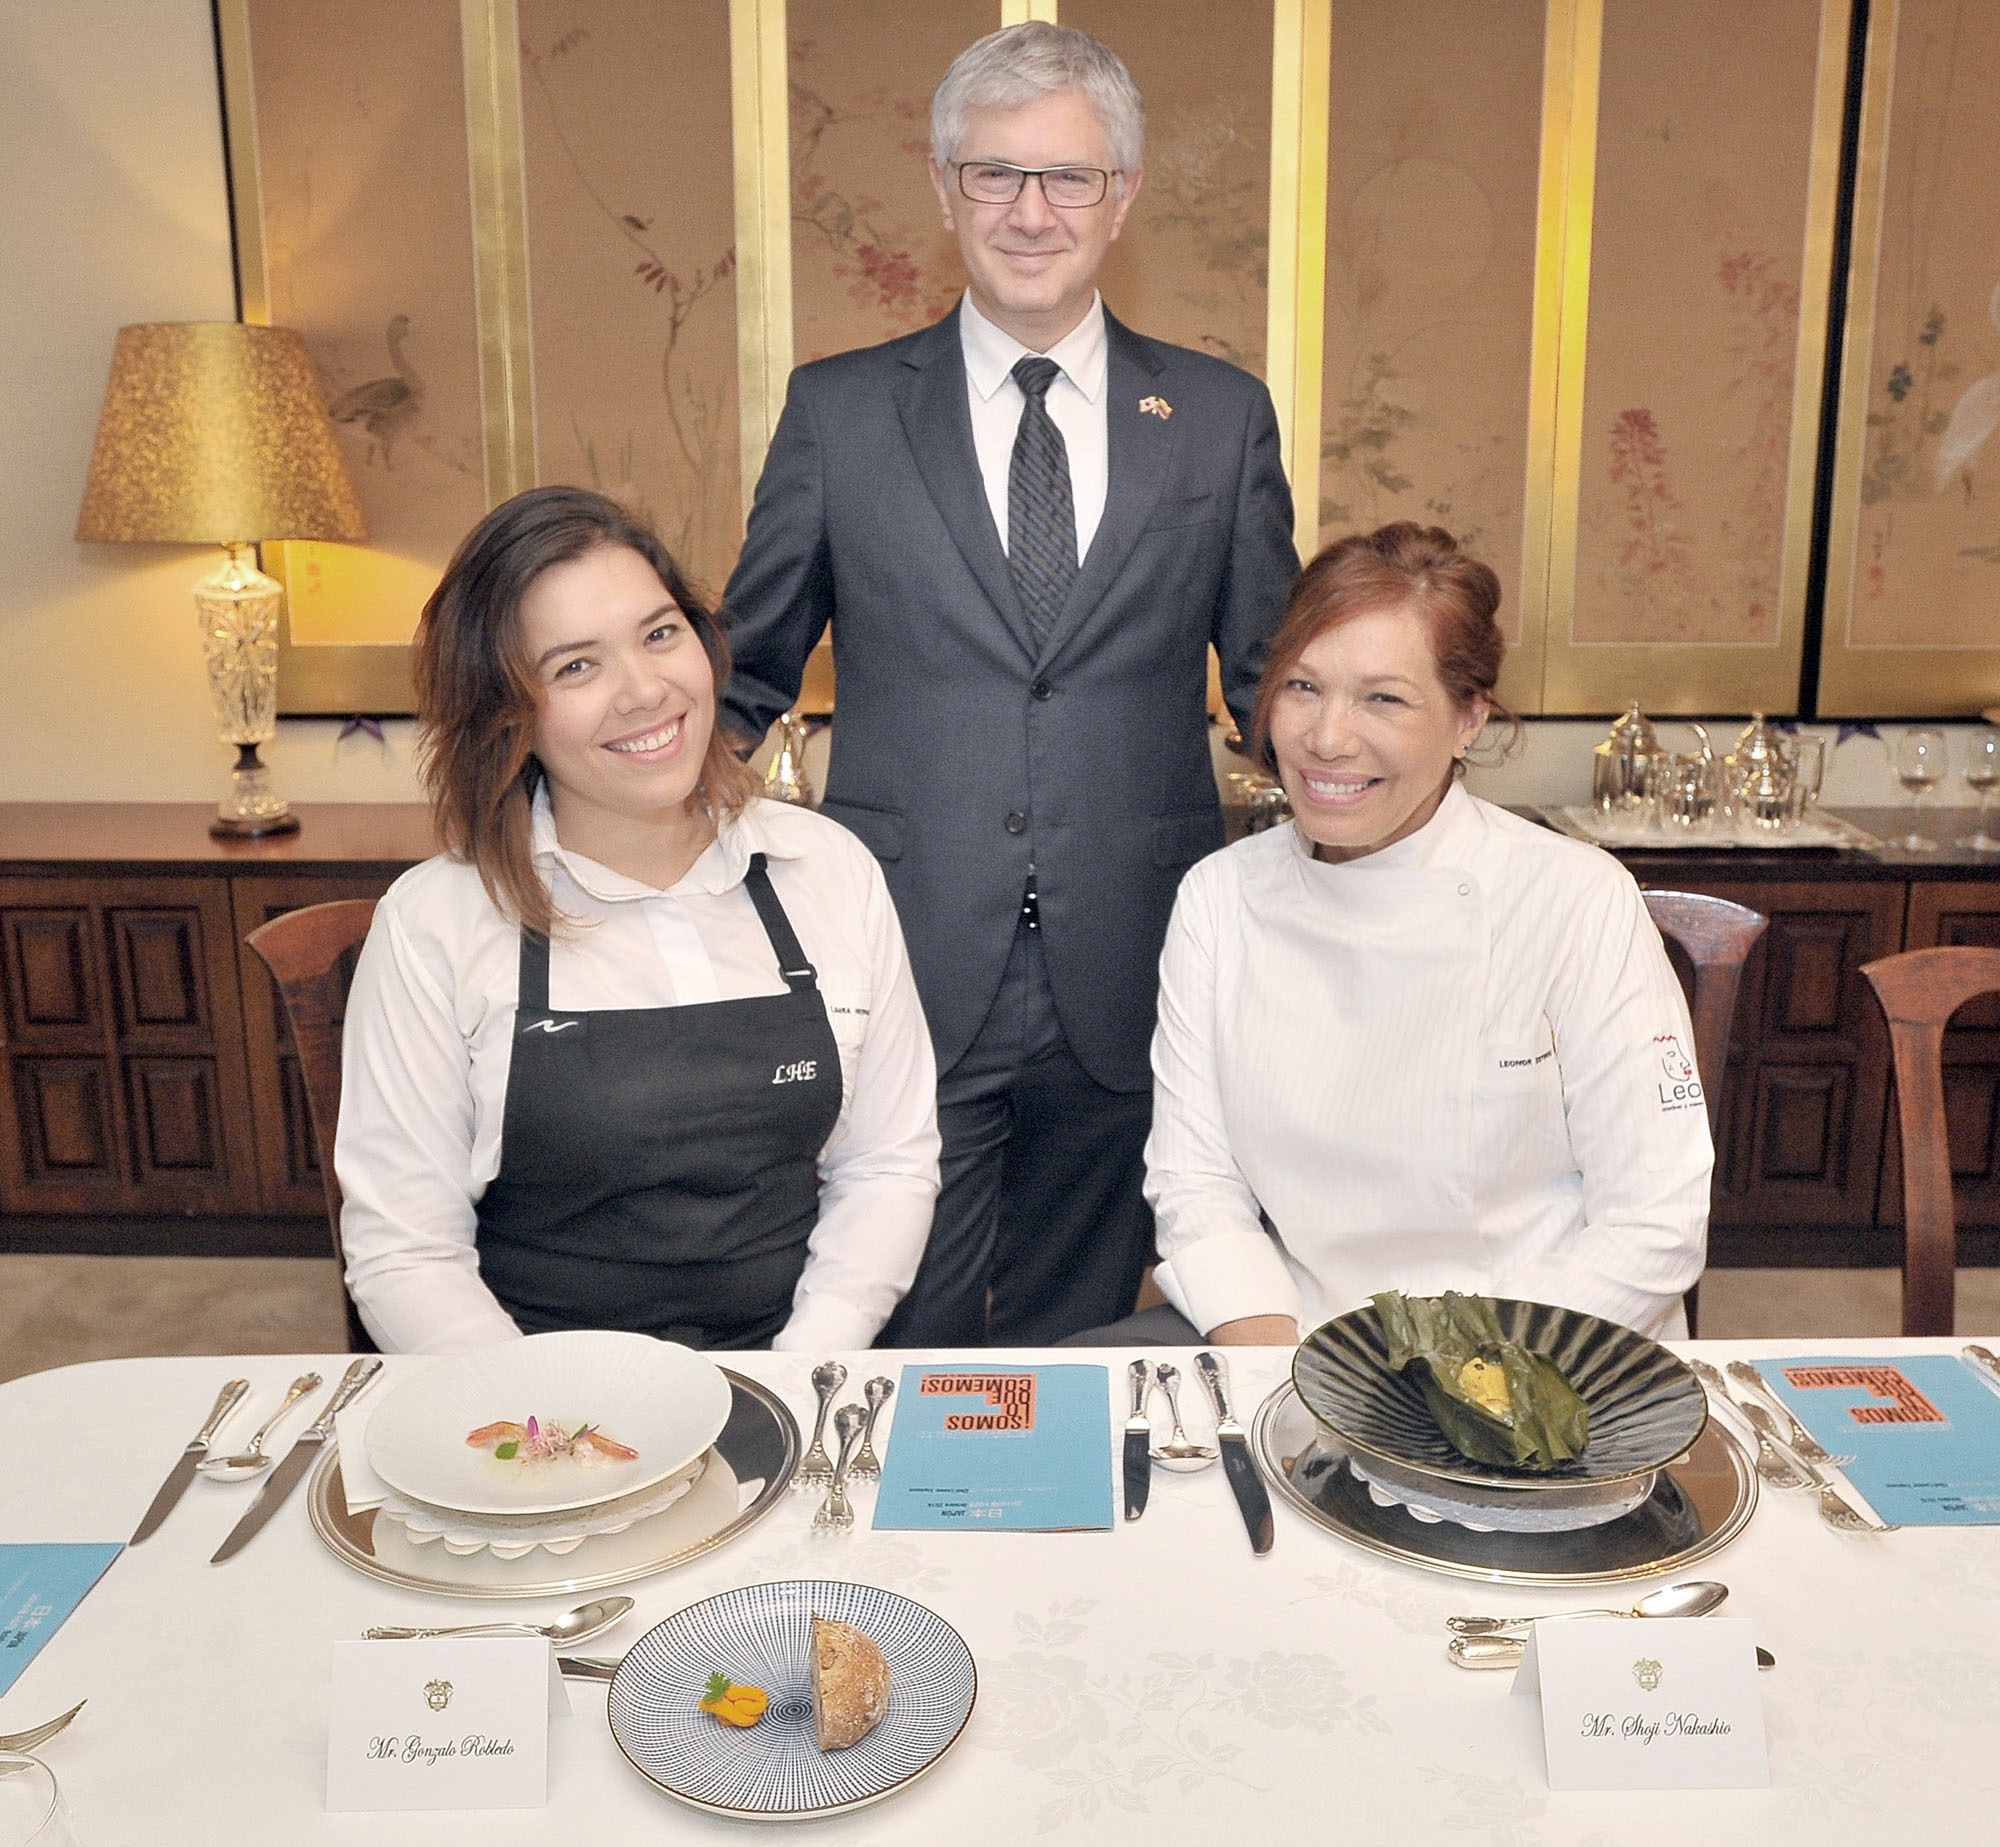 Visiting Colombian Chef Leonor Espinosa (right) and sommelier Laura Hernandez Espinosa (left) pose with Colombia's Ambassador Gabriel Duque while promoting Colombian cuisine during a luncheon event at the ambassador's residence in Tokyo on Oct. 5. | YOSHIAKI MIURA